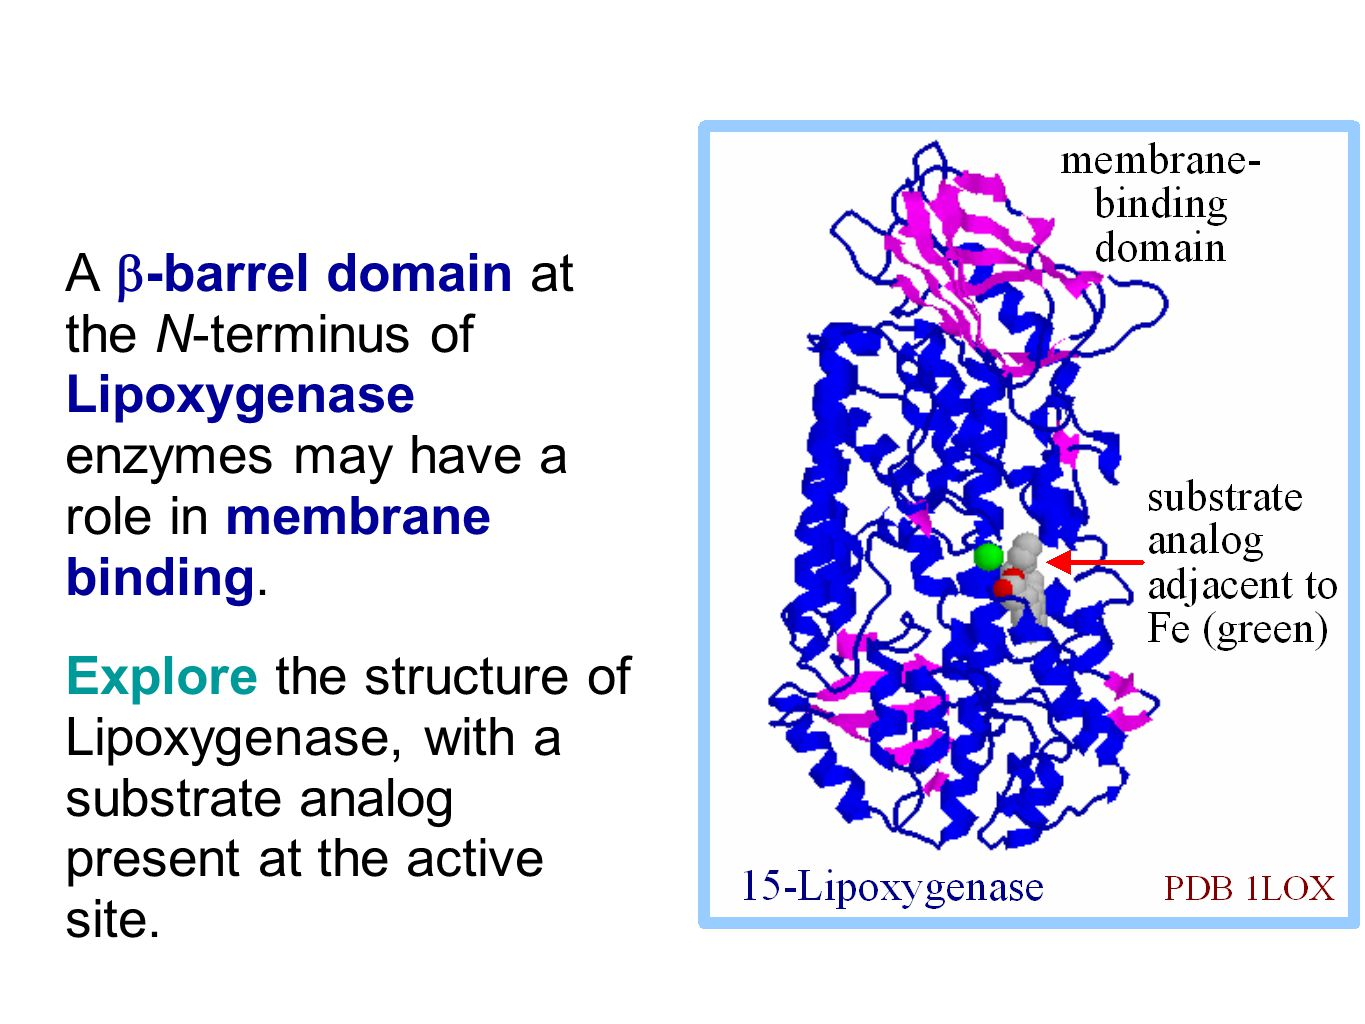 A  -barrel domain at the N-terminus of Lipoxygenase enzymes may have a role in membrane binding.